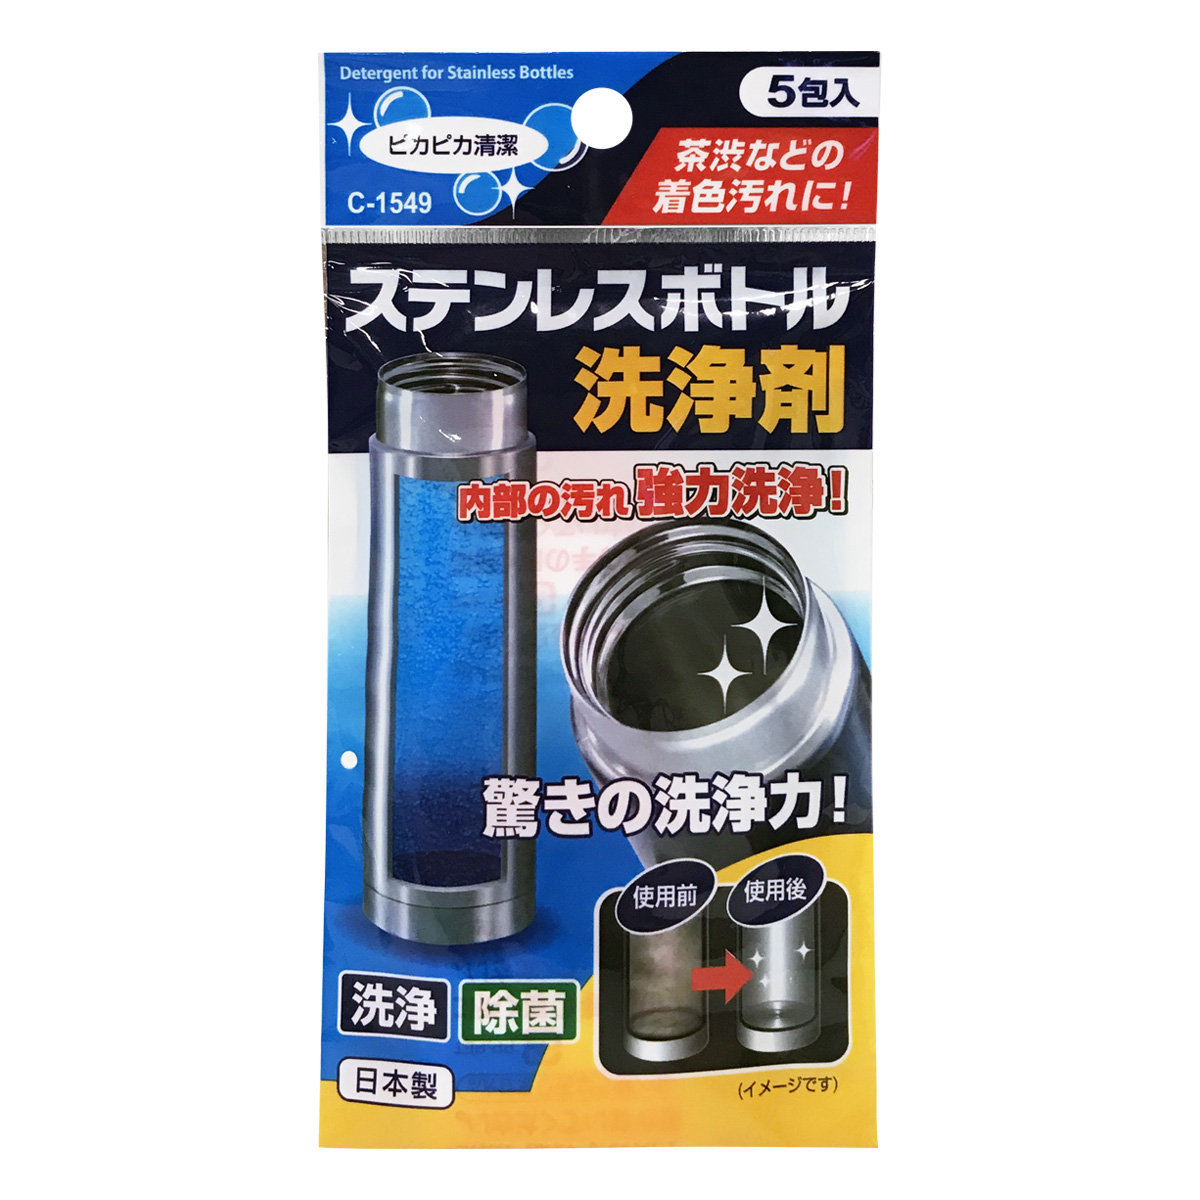 Made in Japan Detergent for stainless bottles (5g x 5packs) (401549)